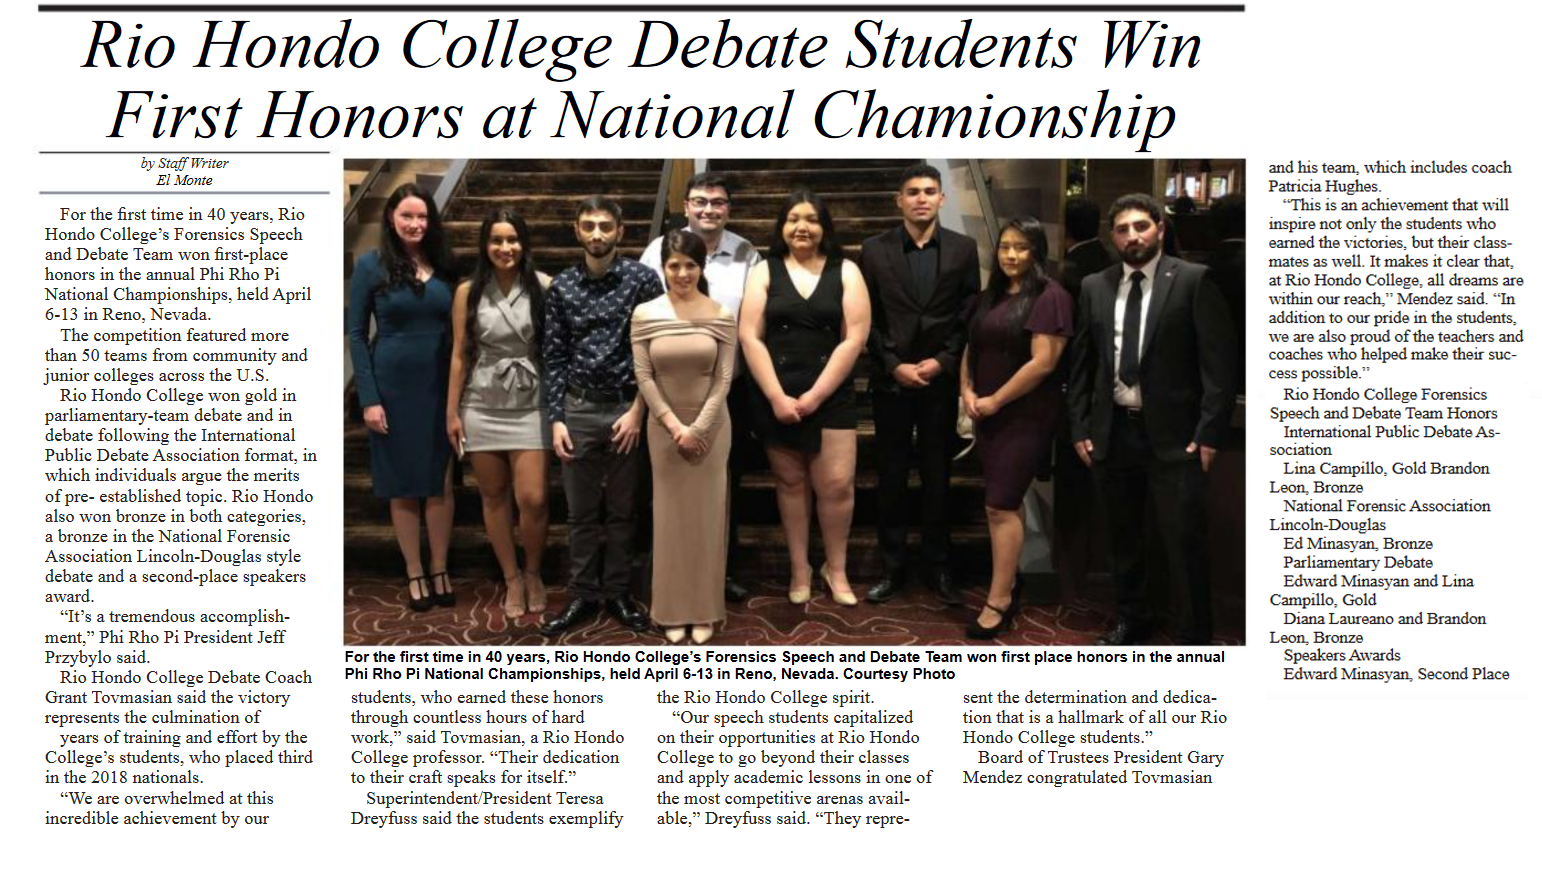 Mid Valley News coverage on debate students winning national championship